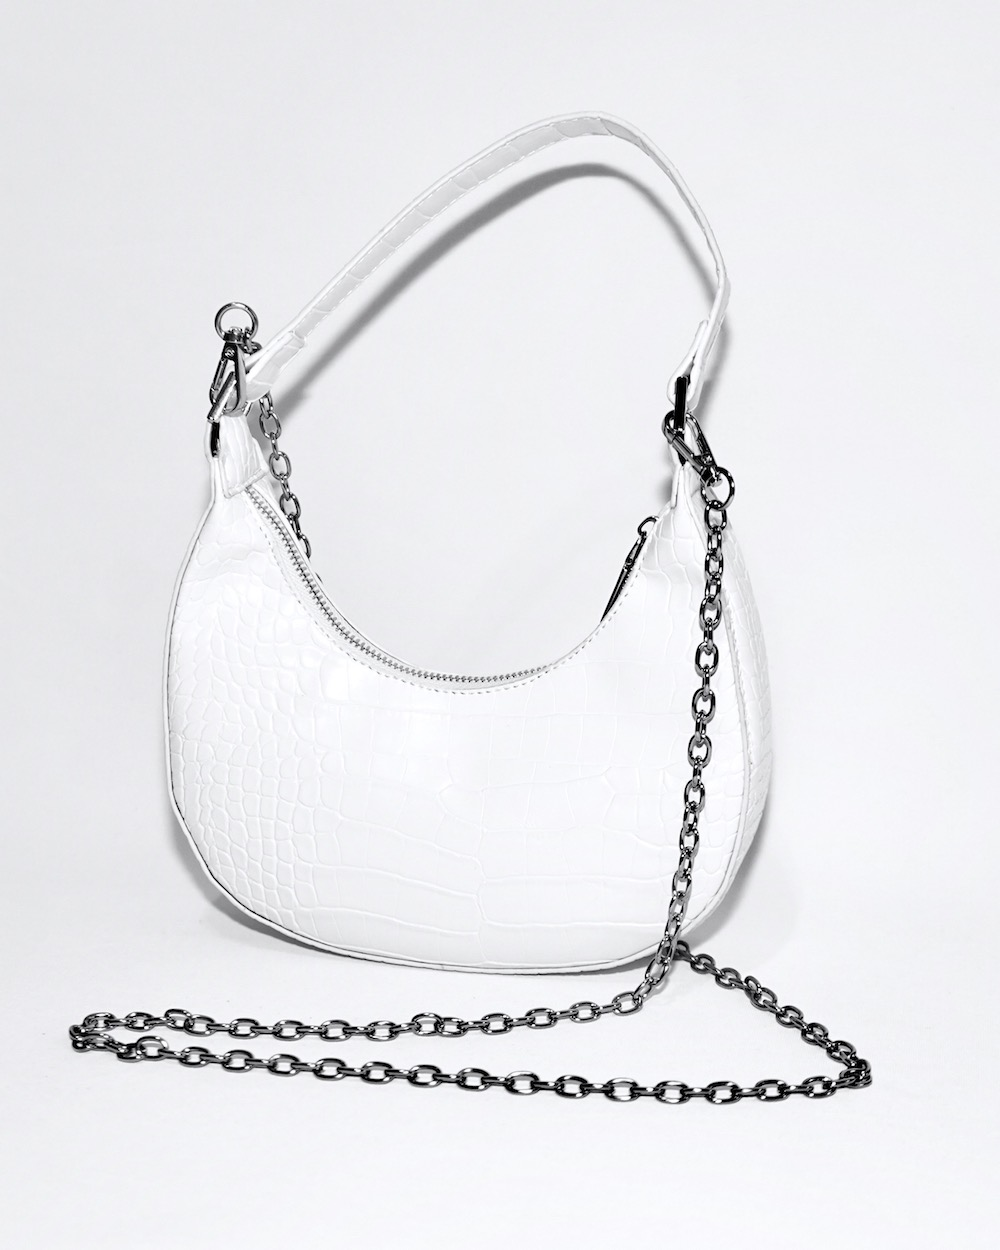 2way Crocodile Touch Half-moon Bag (white)